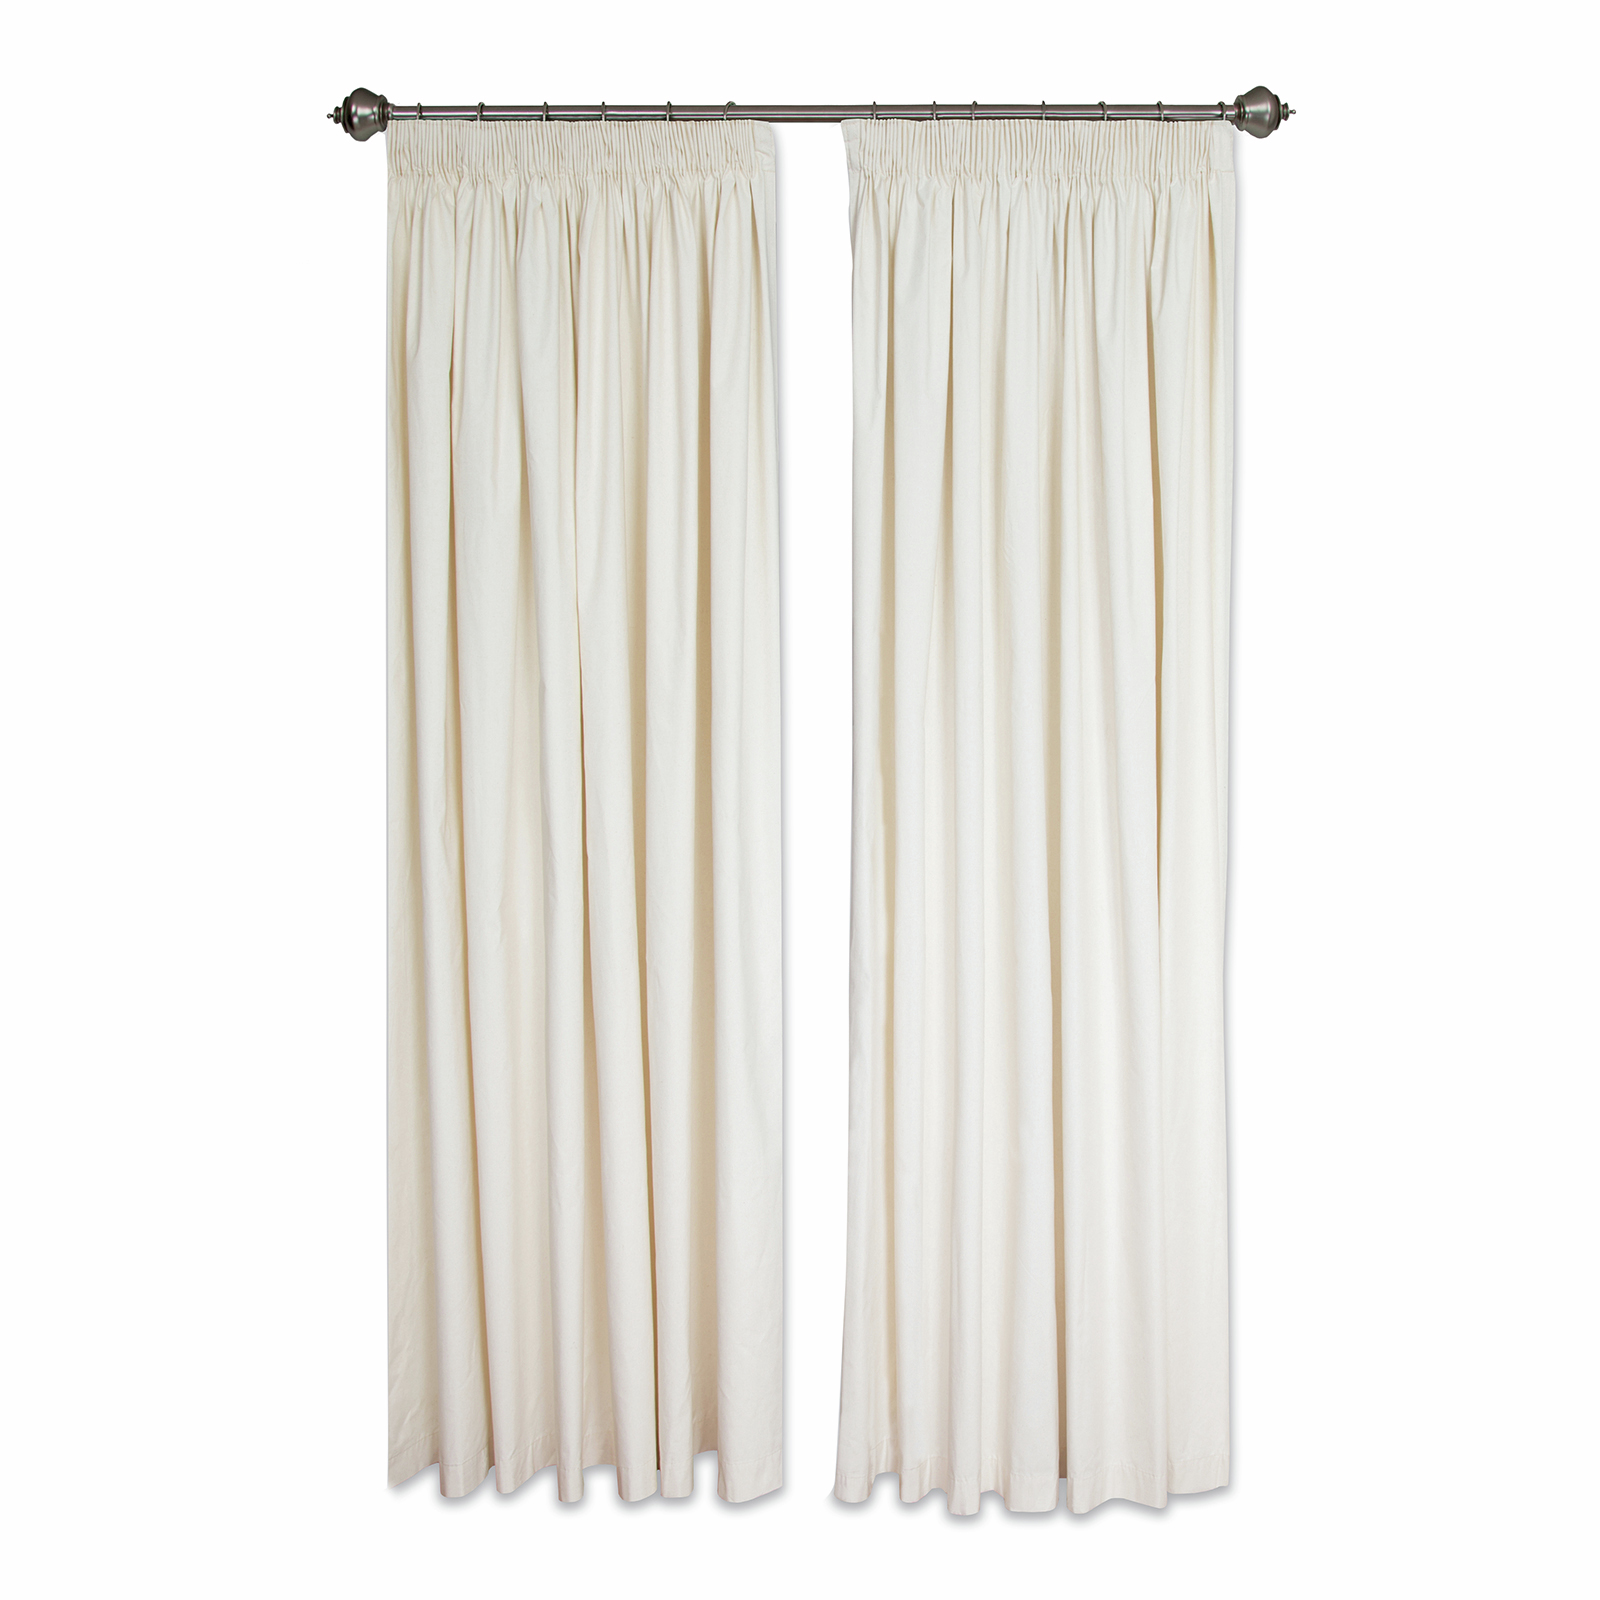 Homebase 1.5 - 2.3 x 1.6m Calico Thermal Curtain